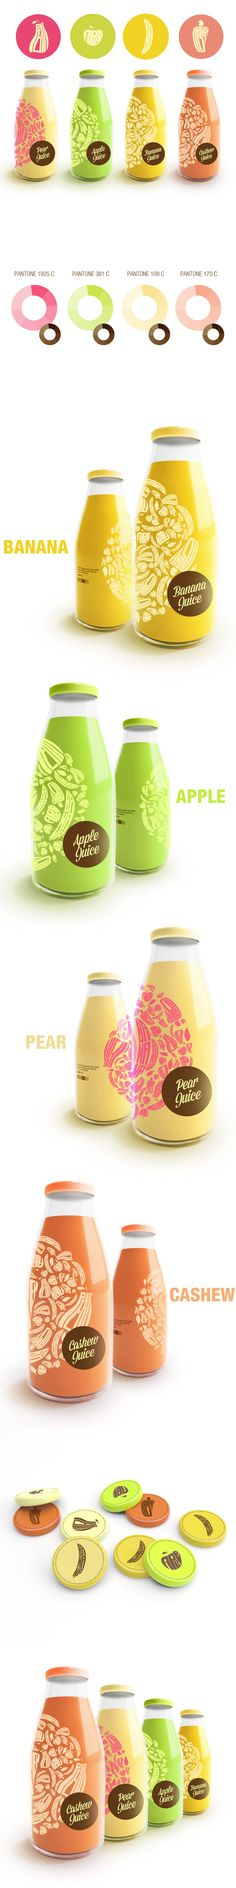 Packaging Project by Renan Vizzotto. The illustrations really help differentiate each flavor without loosing its wit.                                                                                                                                                                                 More